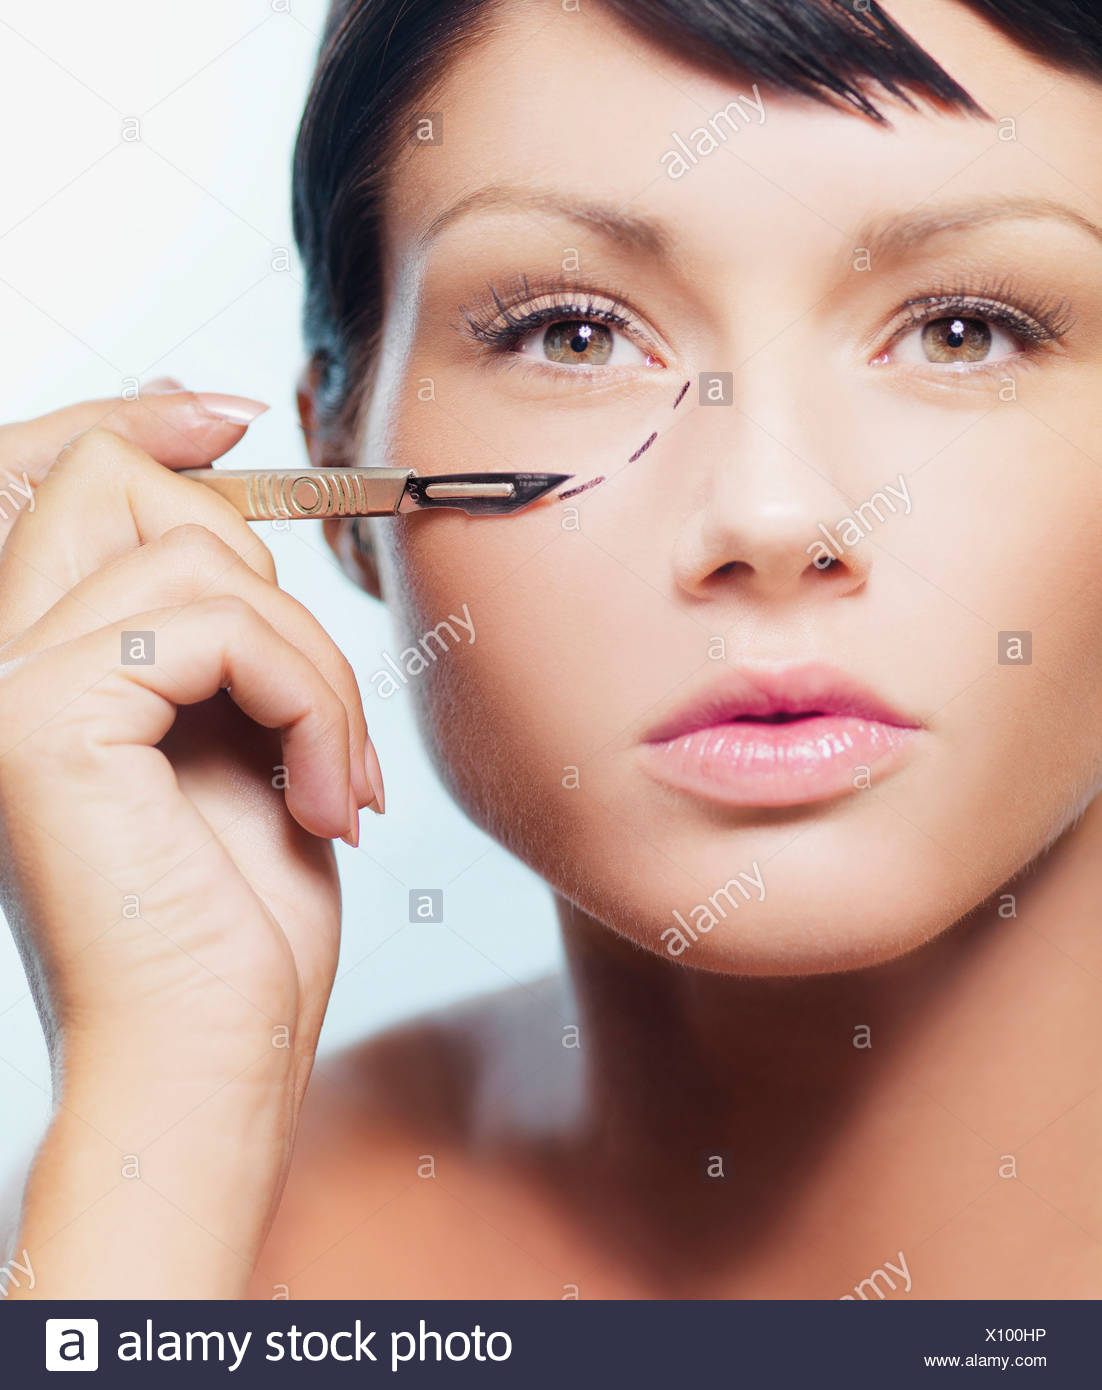 A woman with a dotted line under her eye holding a scalpel Stock Photo